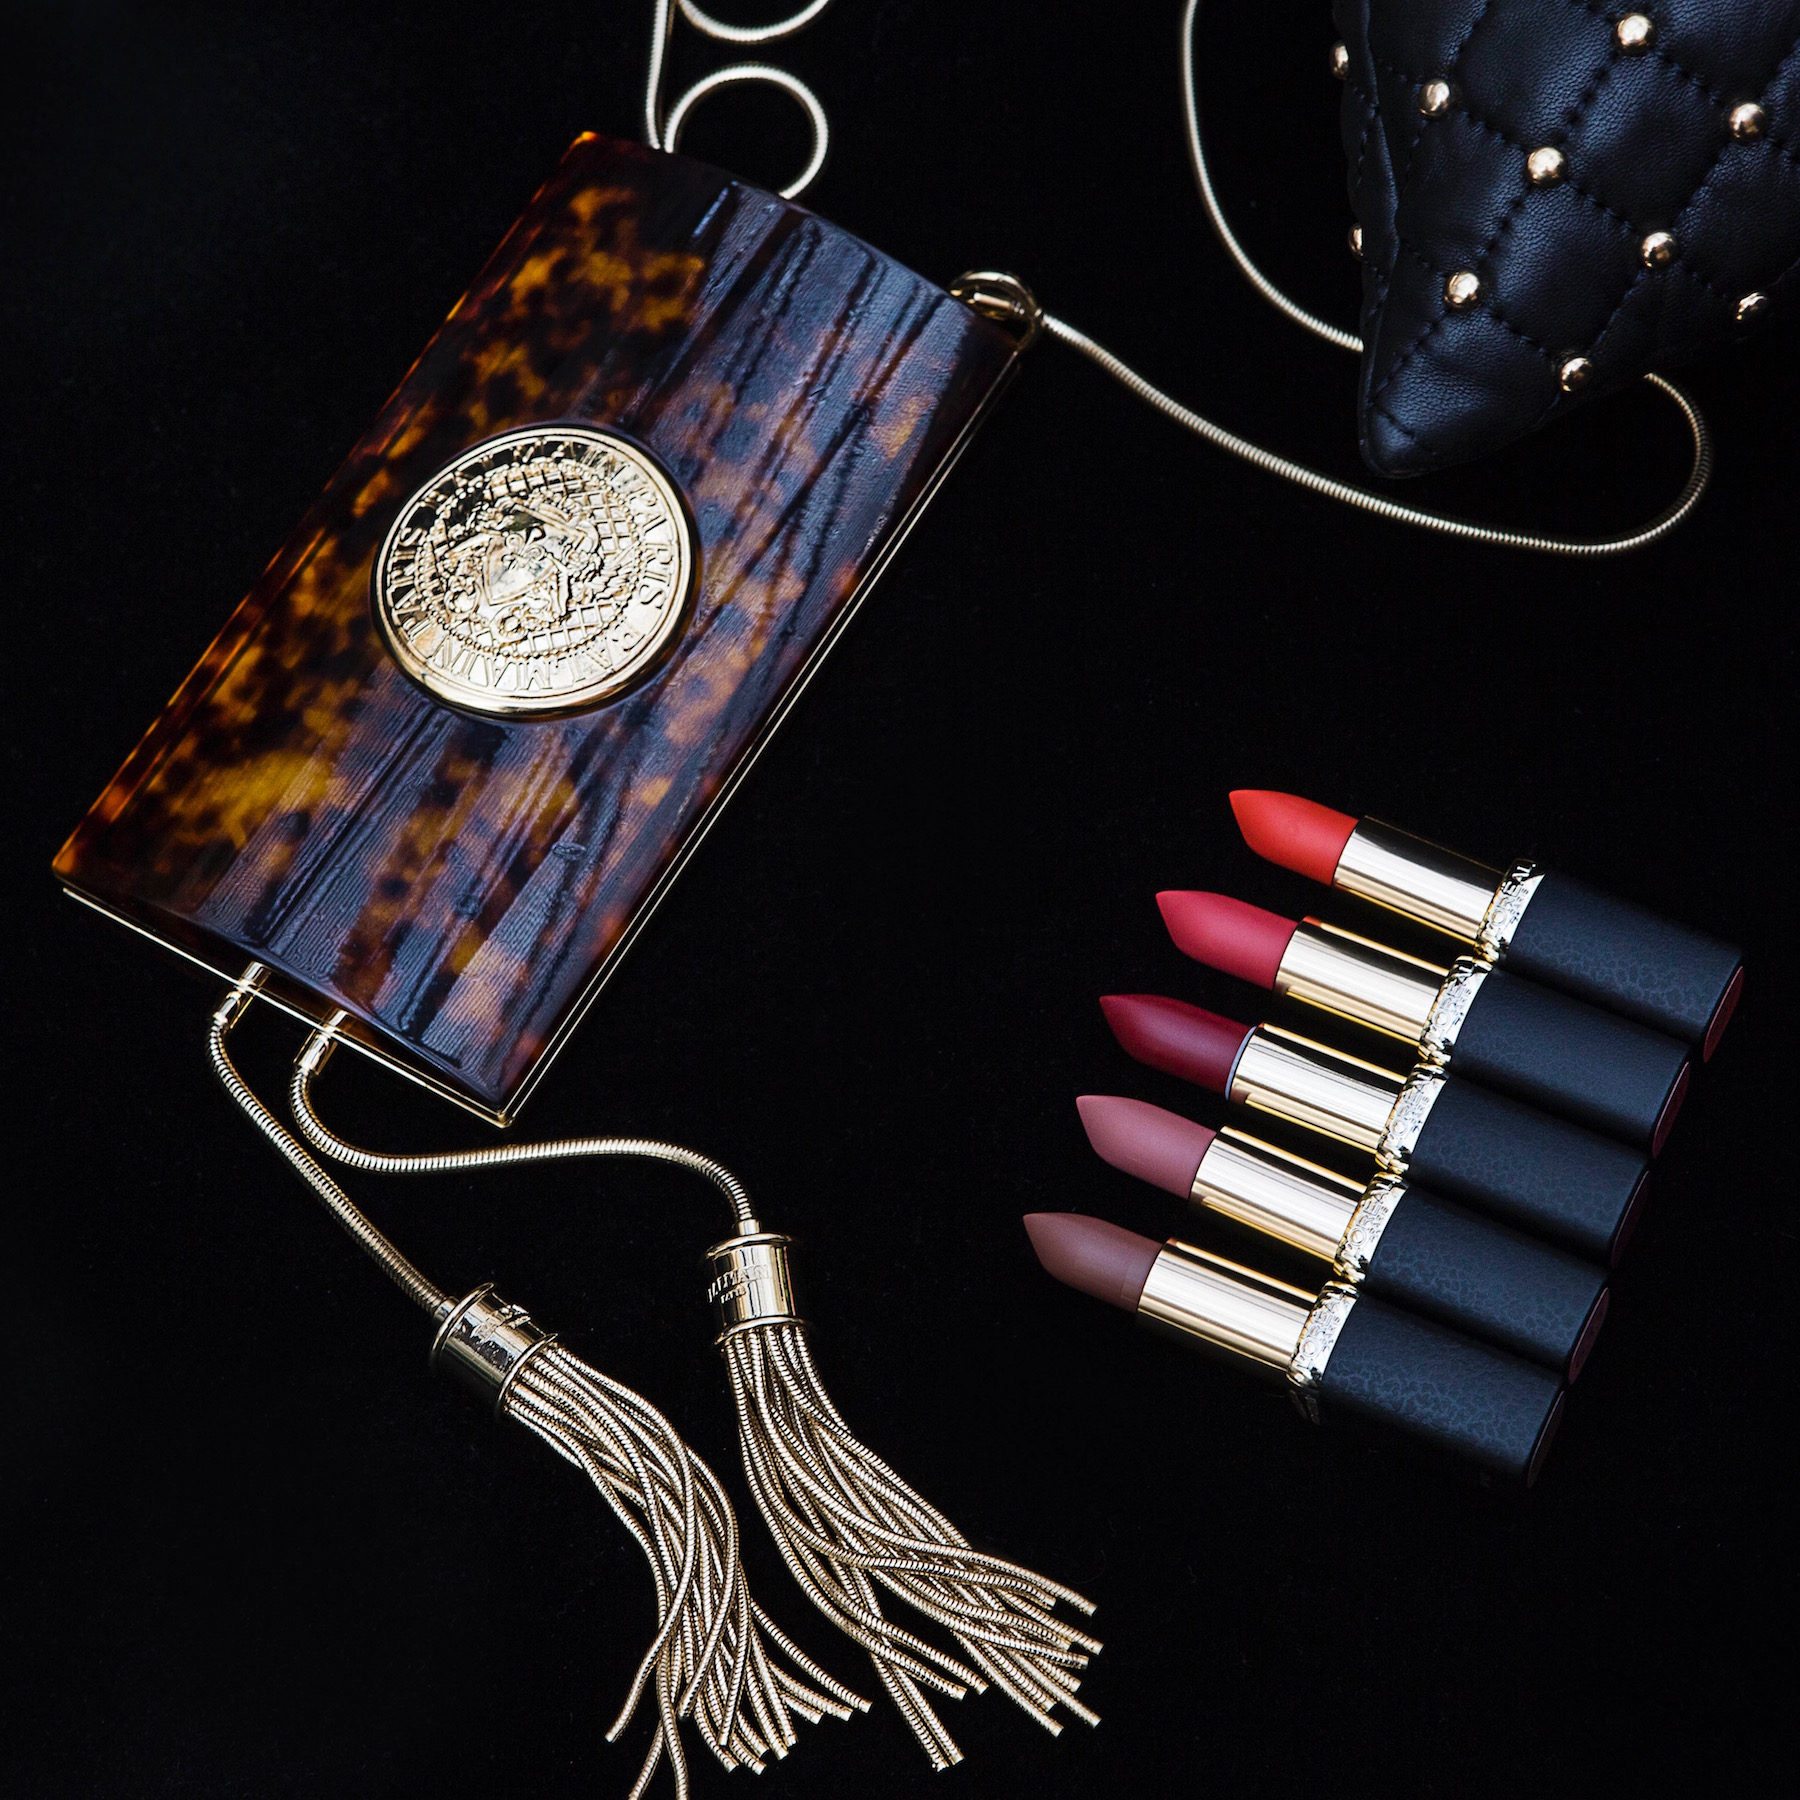 suelovesnyc_beauty_blog_susan_Fengler_loreal_paris_x_balmain_paris L'Oréal Paris x Balmain Paris Kooperation Lippenstifte